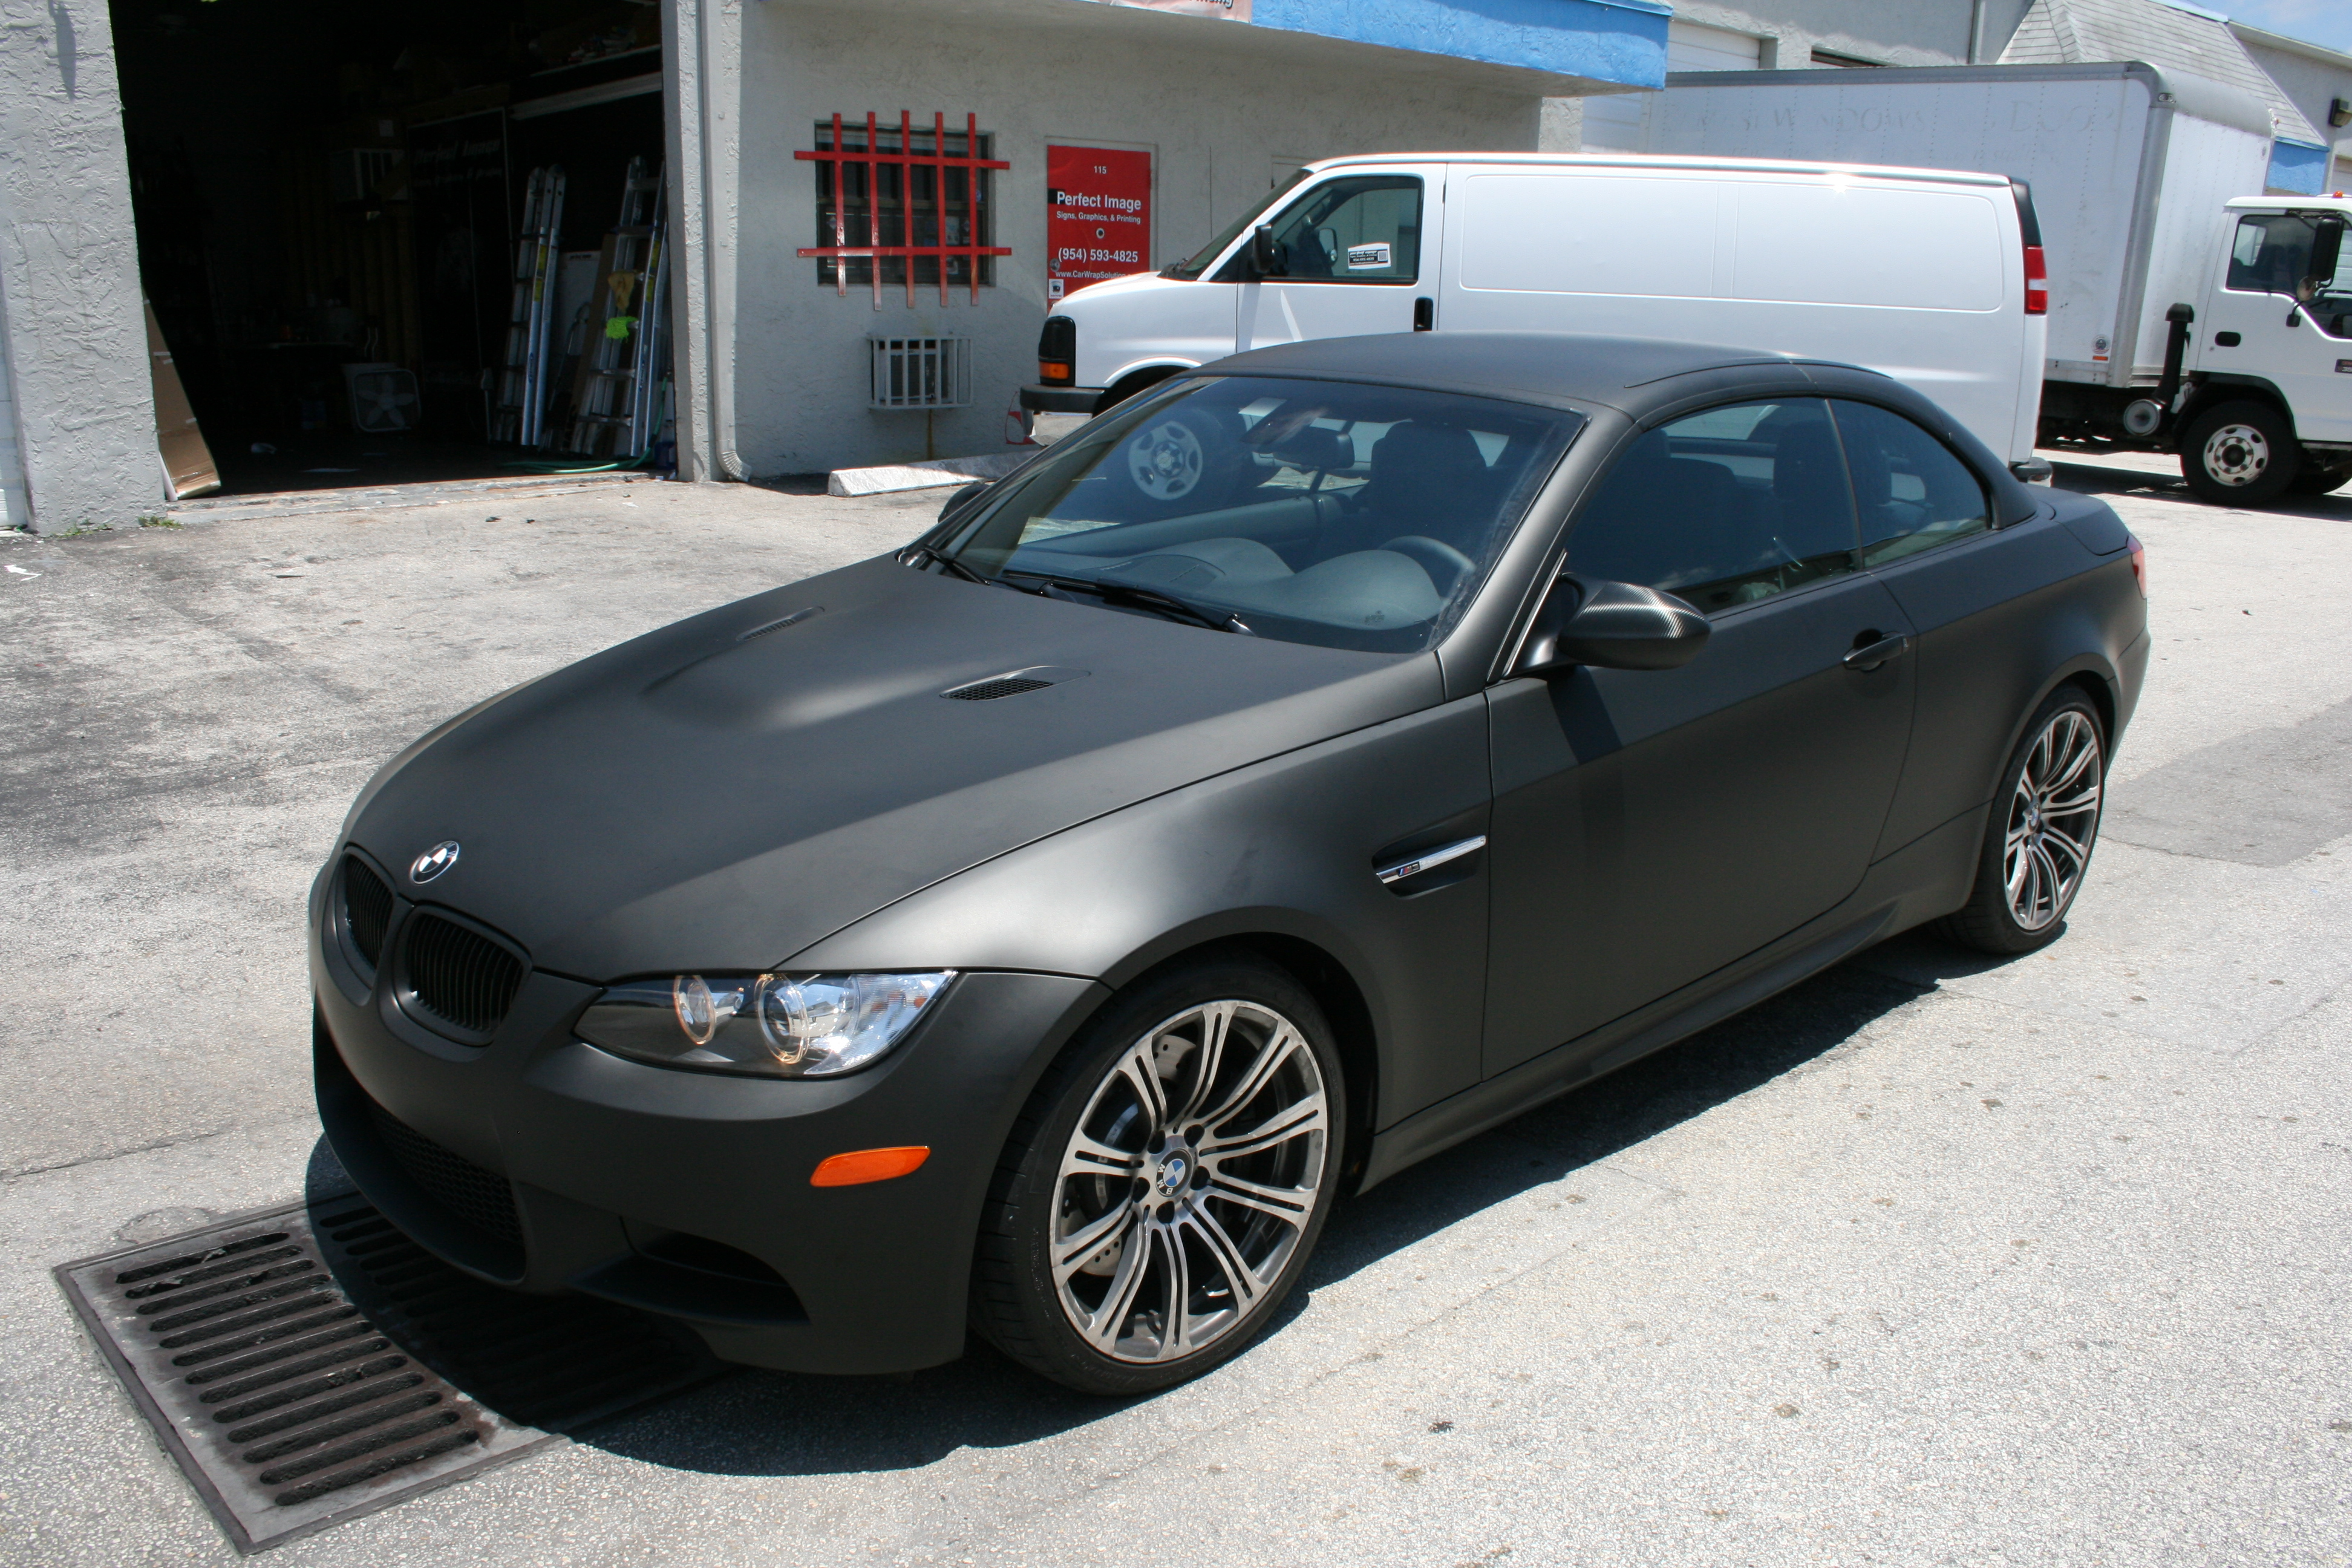 Fort Lauderdale Nissan >> BMW Matte Black Car Wrap Fort Lauderdale Florida